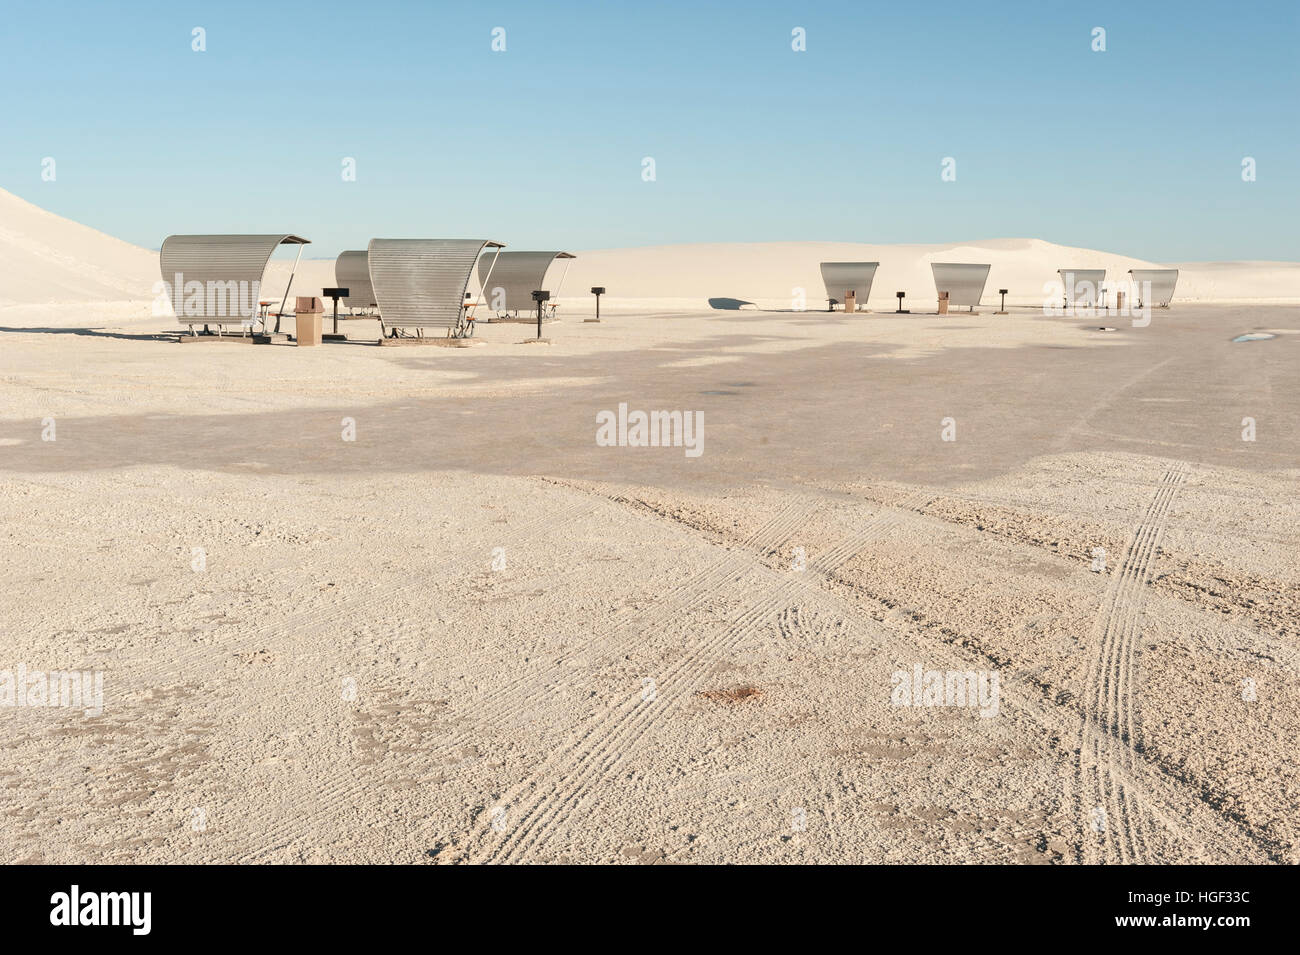 Picnic shelters with benches and grills at White Sands National Monument, New Mexico, NM, USA. - Stock Image